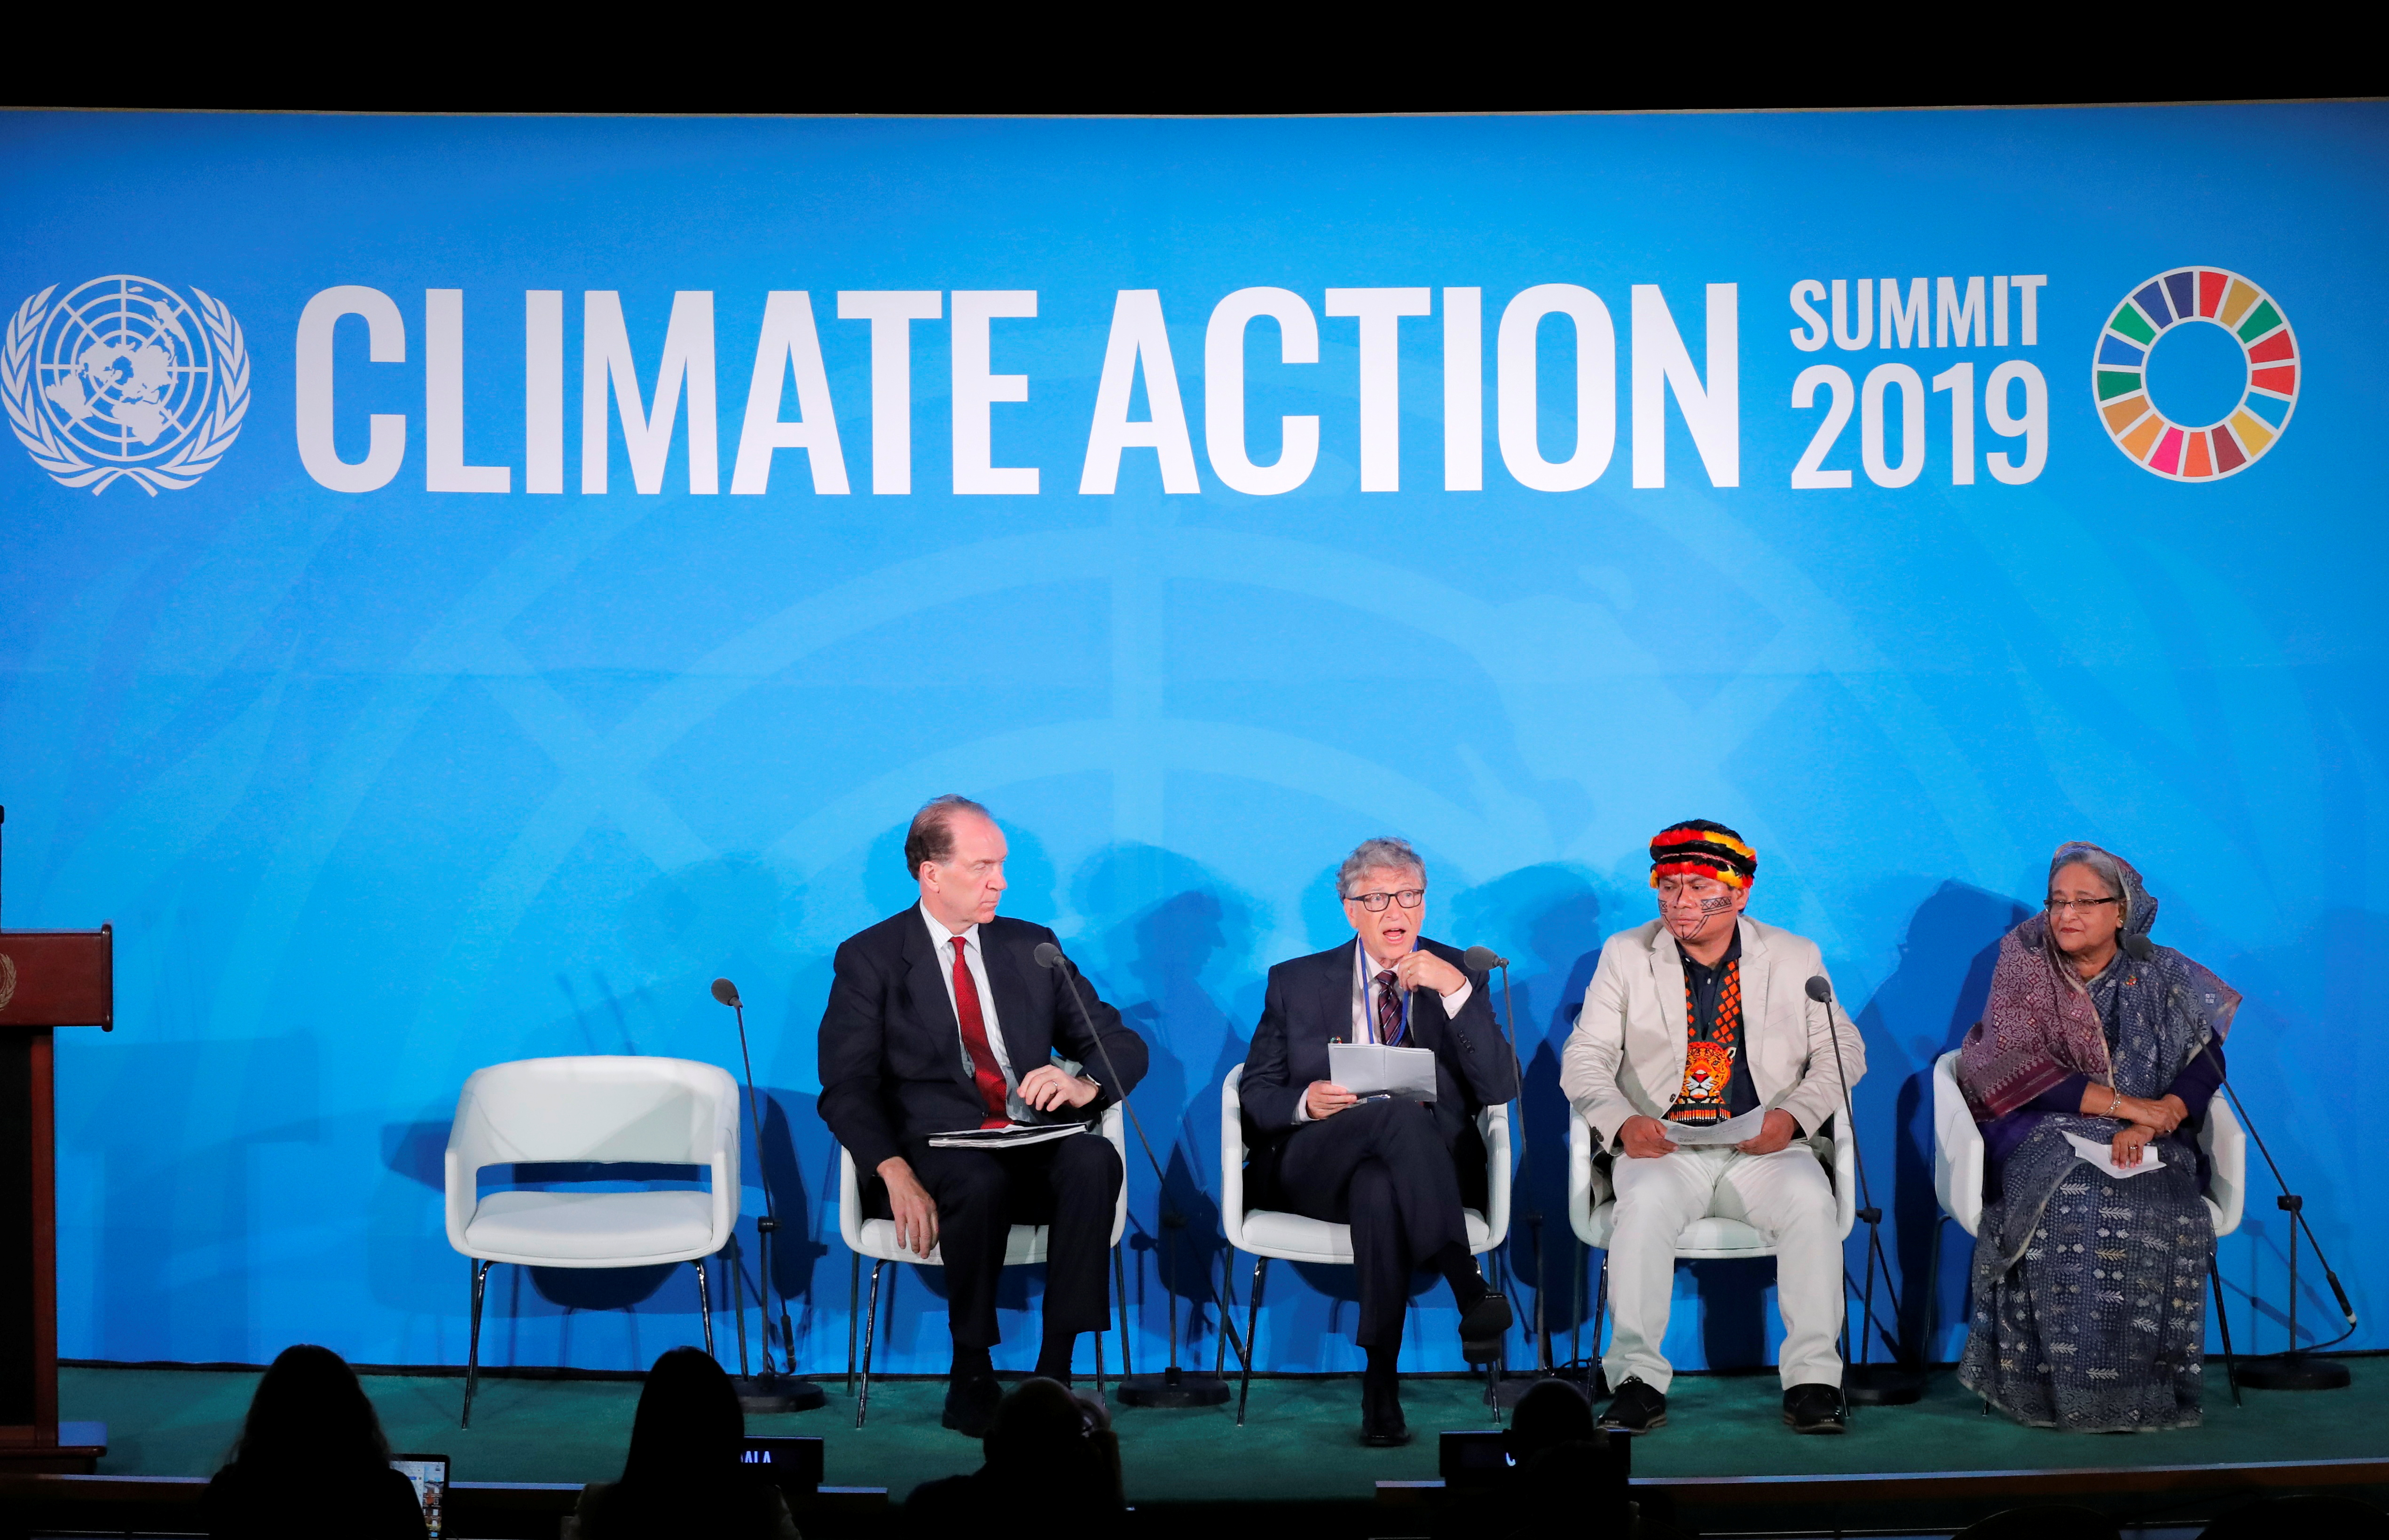 Bill Gates, Trustee and Co-Chair of the Global Commission on Adaptation, speaks as World Bank Group President David R. Malpass (L), Amazon-based indigenous leader Tuntiak Katan and Bangladesh's Prime Minister Sheikh Hasina (R) look on during the 2019 United Nations Climate Action Summit at U.N. headquarters in New York City, New York, U.S., September 23, 2019. REUTERS/Lucas Jackson/File Photo